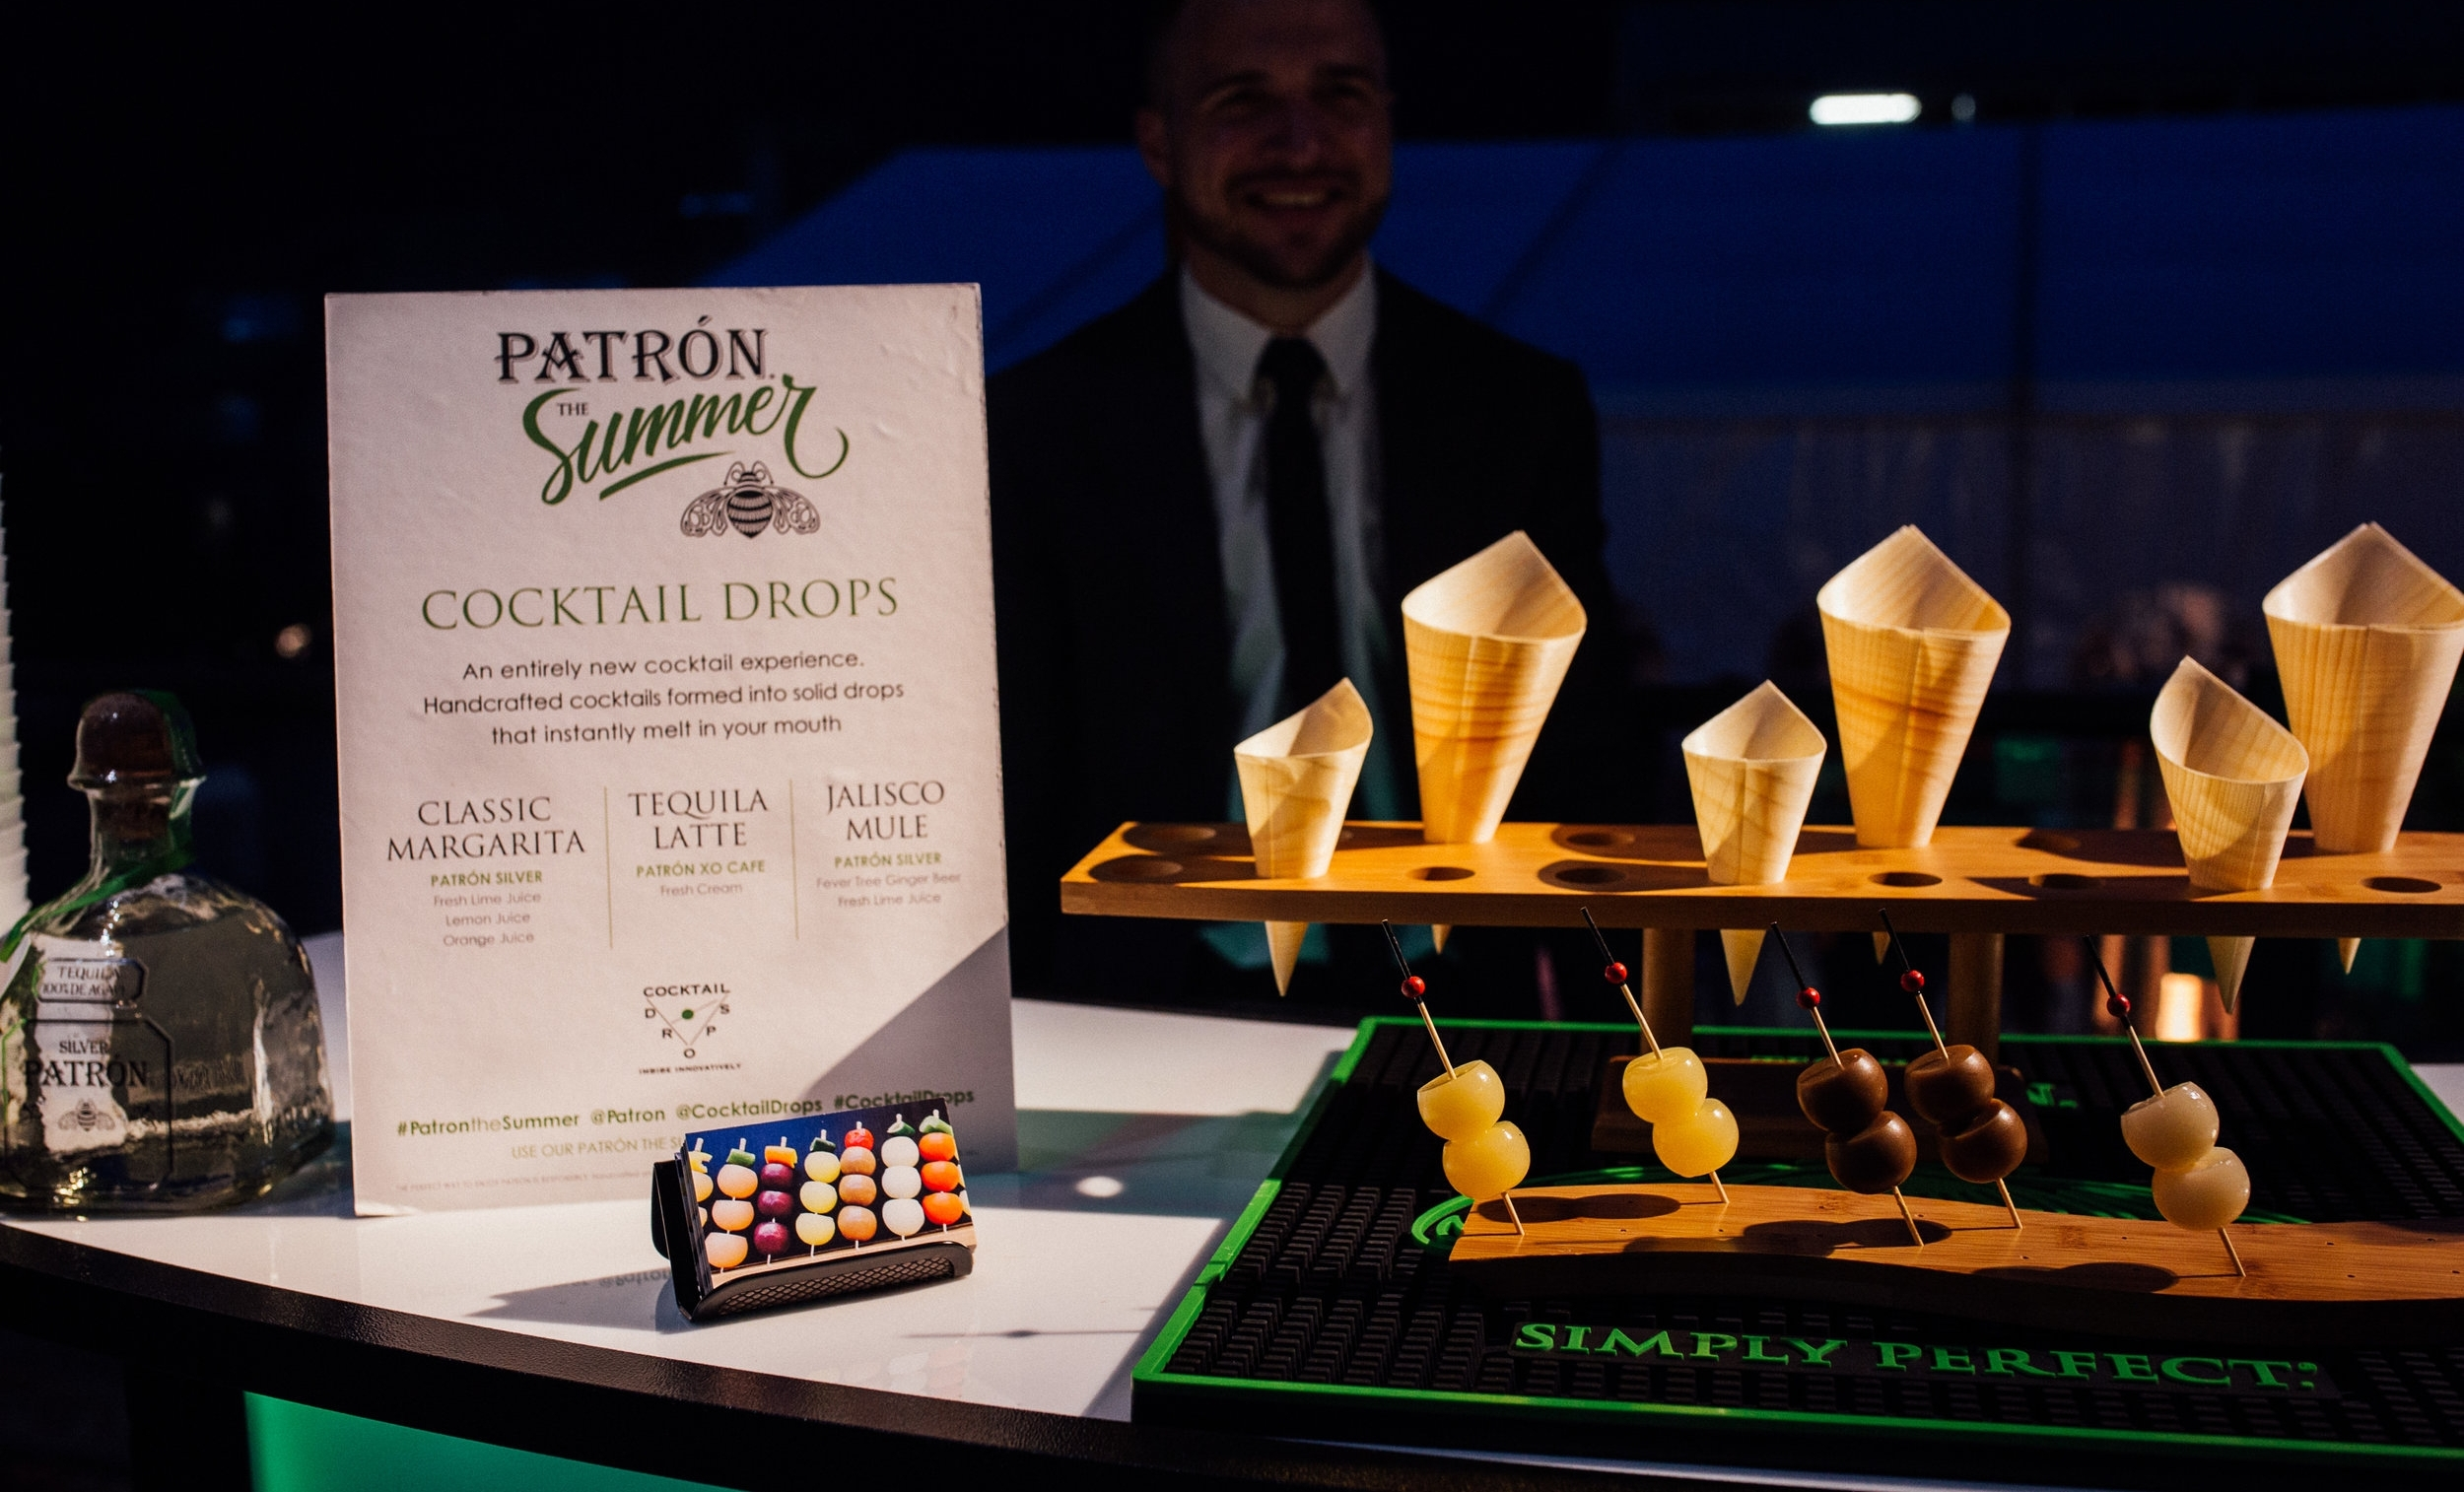 Featured by Patrón Spiritsat the 2017 Food & Wine Classic in Aspen